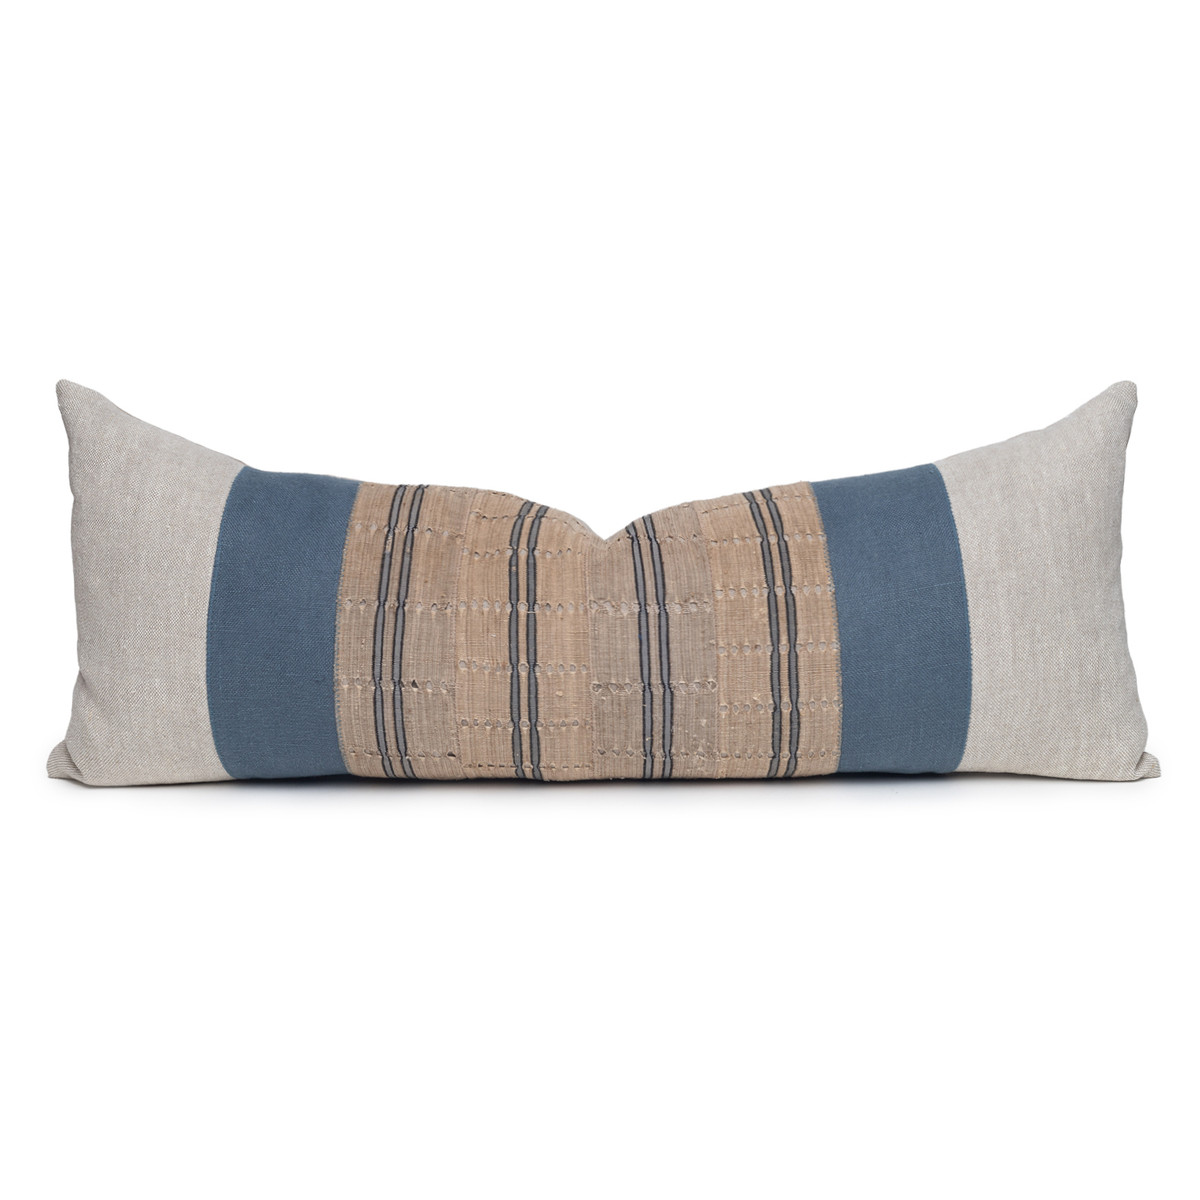 Bristol Blue Luxe Vintage Pillow with African Aso Oke Textiles and 100% Eco-friendly Topanga linen in Natural- 1436- Front View